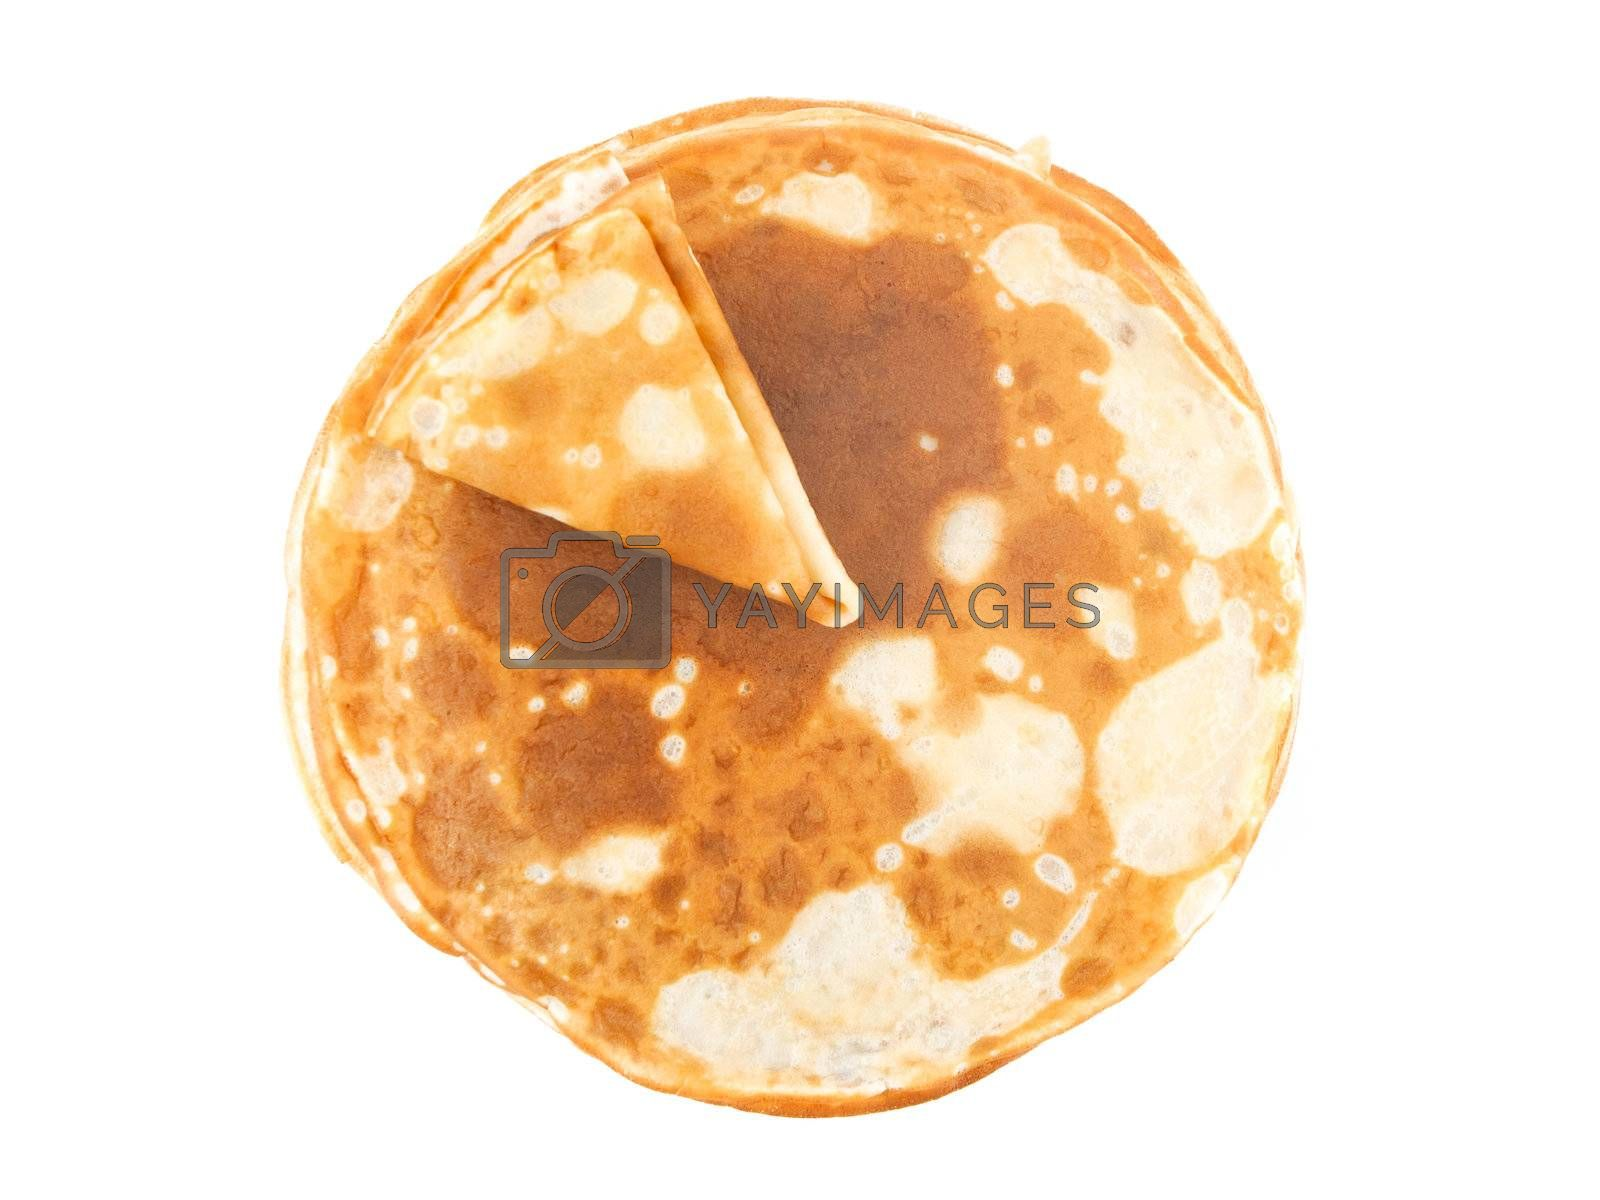 Russian pancake isolated on white background